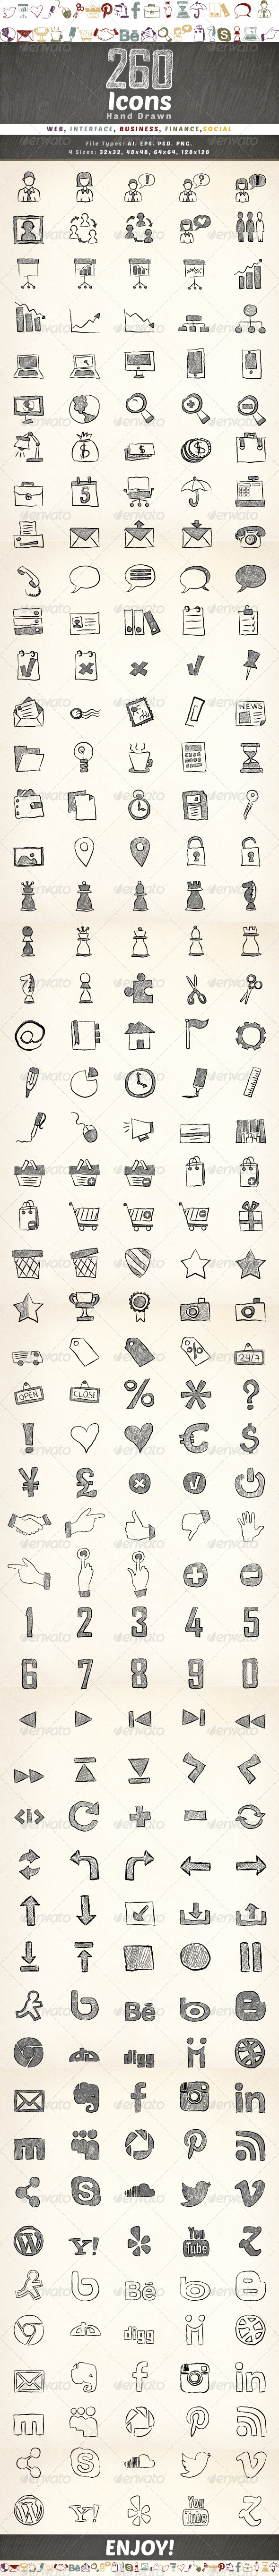 GraphicRiver 260 Hand Drawn Icons 5168008